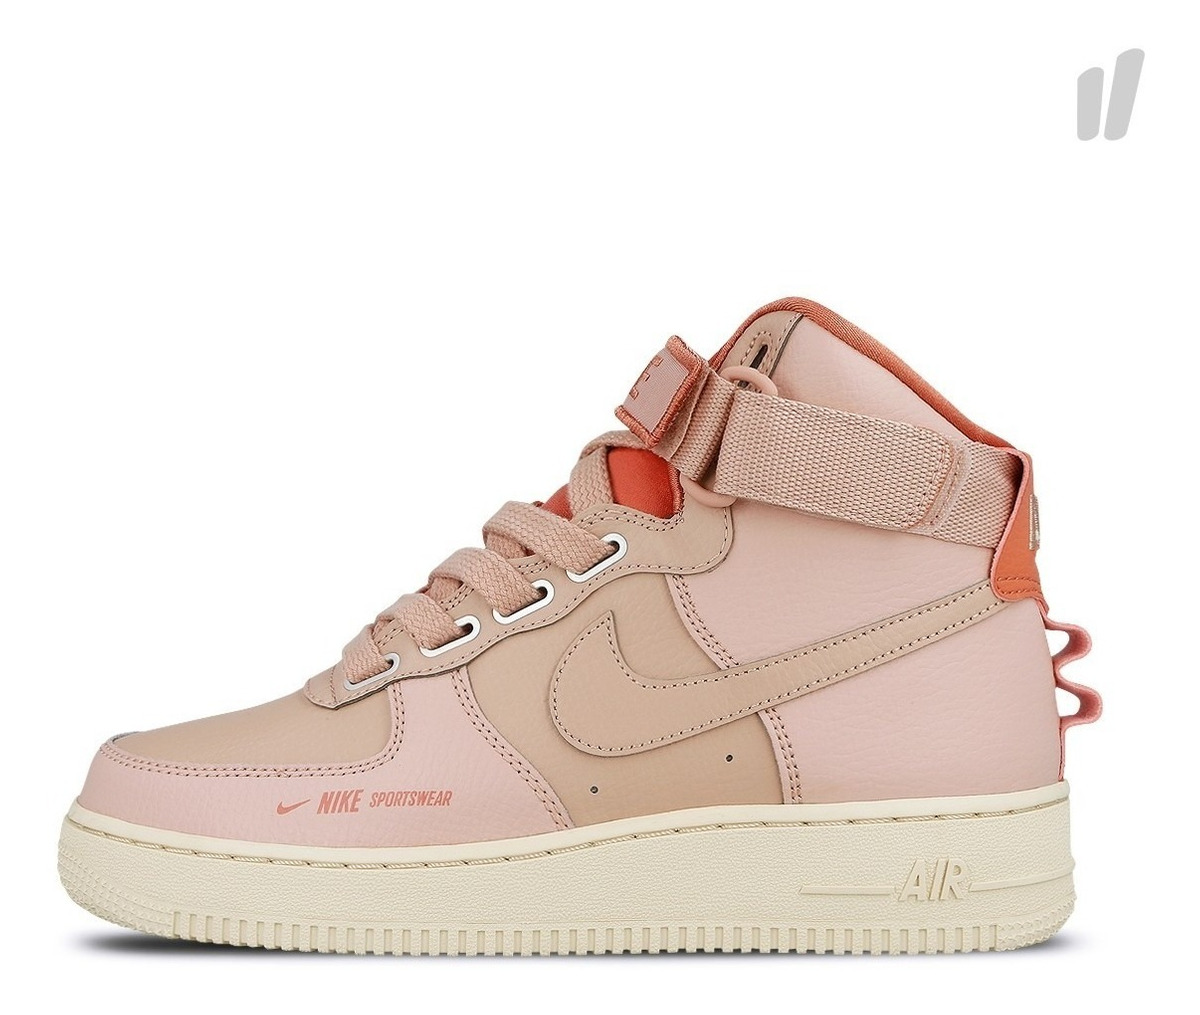 Force 1 Utility Air Pink Mujer Nike High hQtsrdC